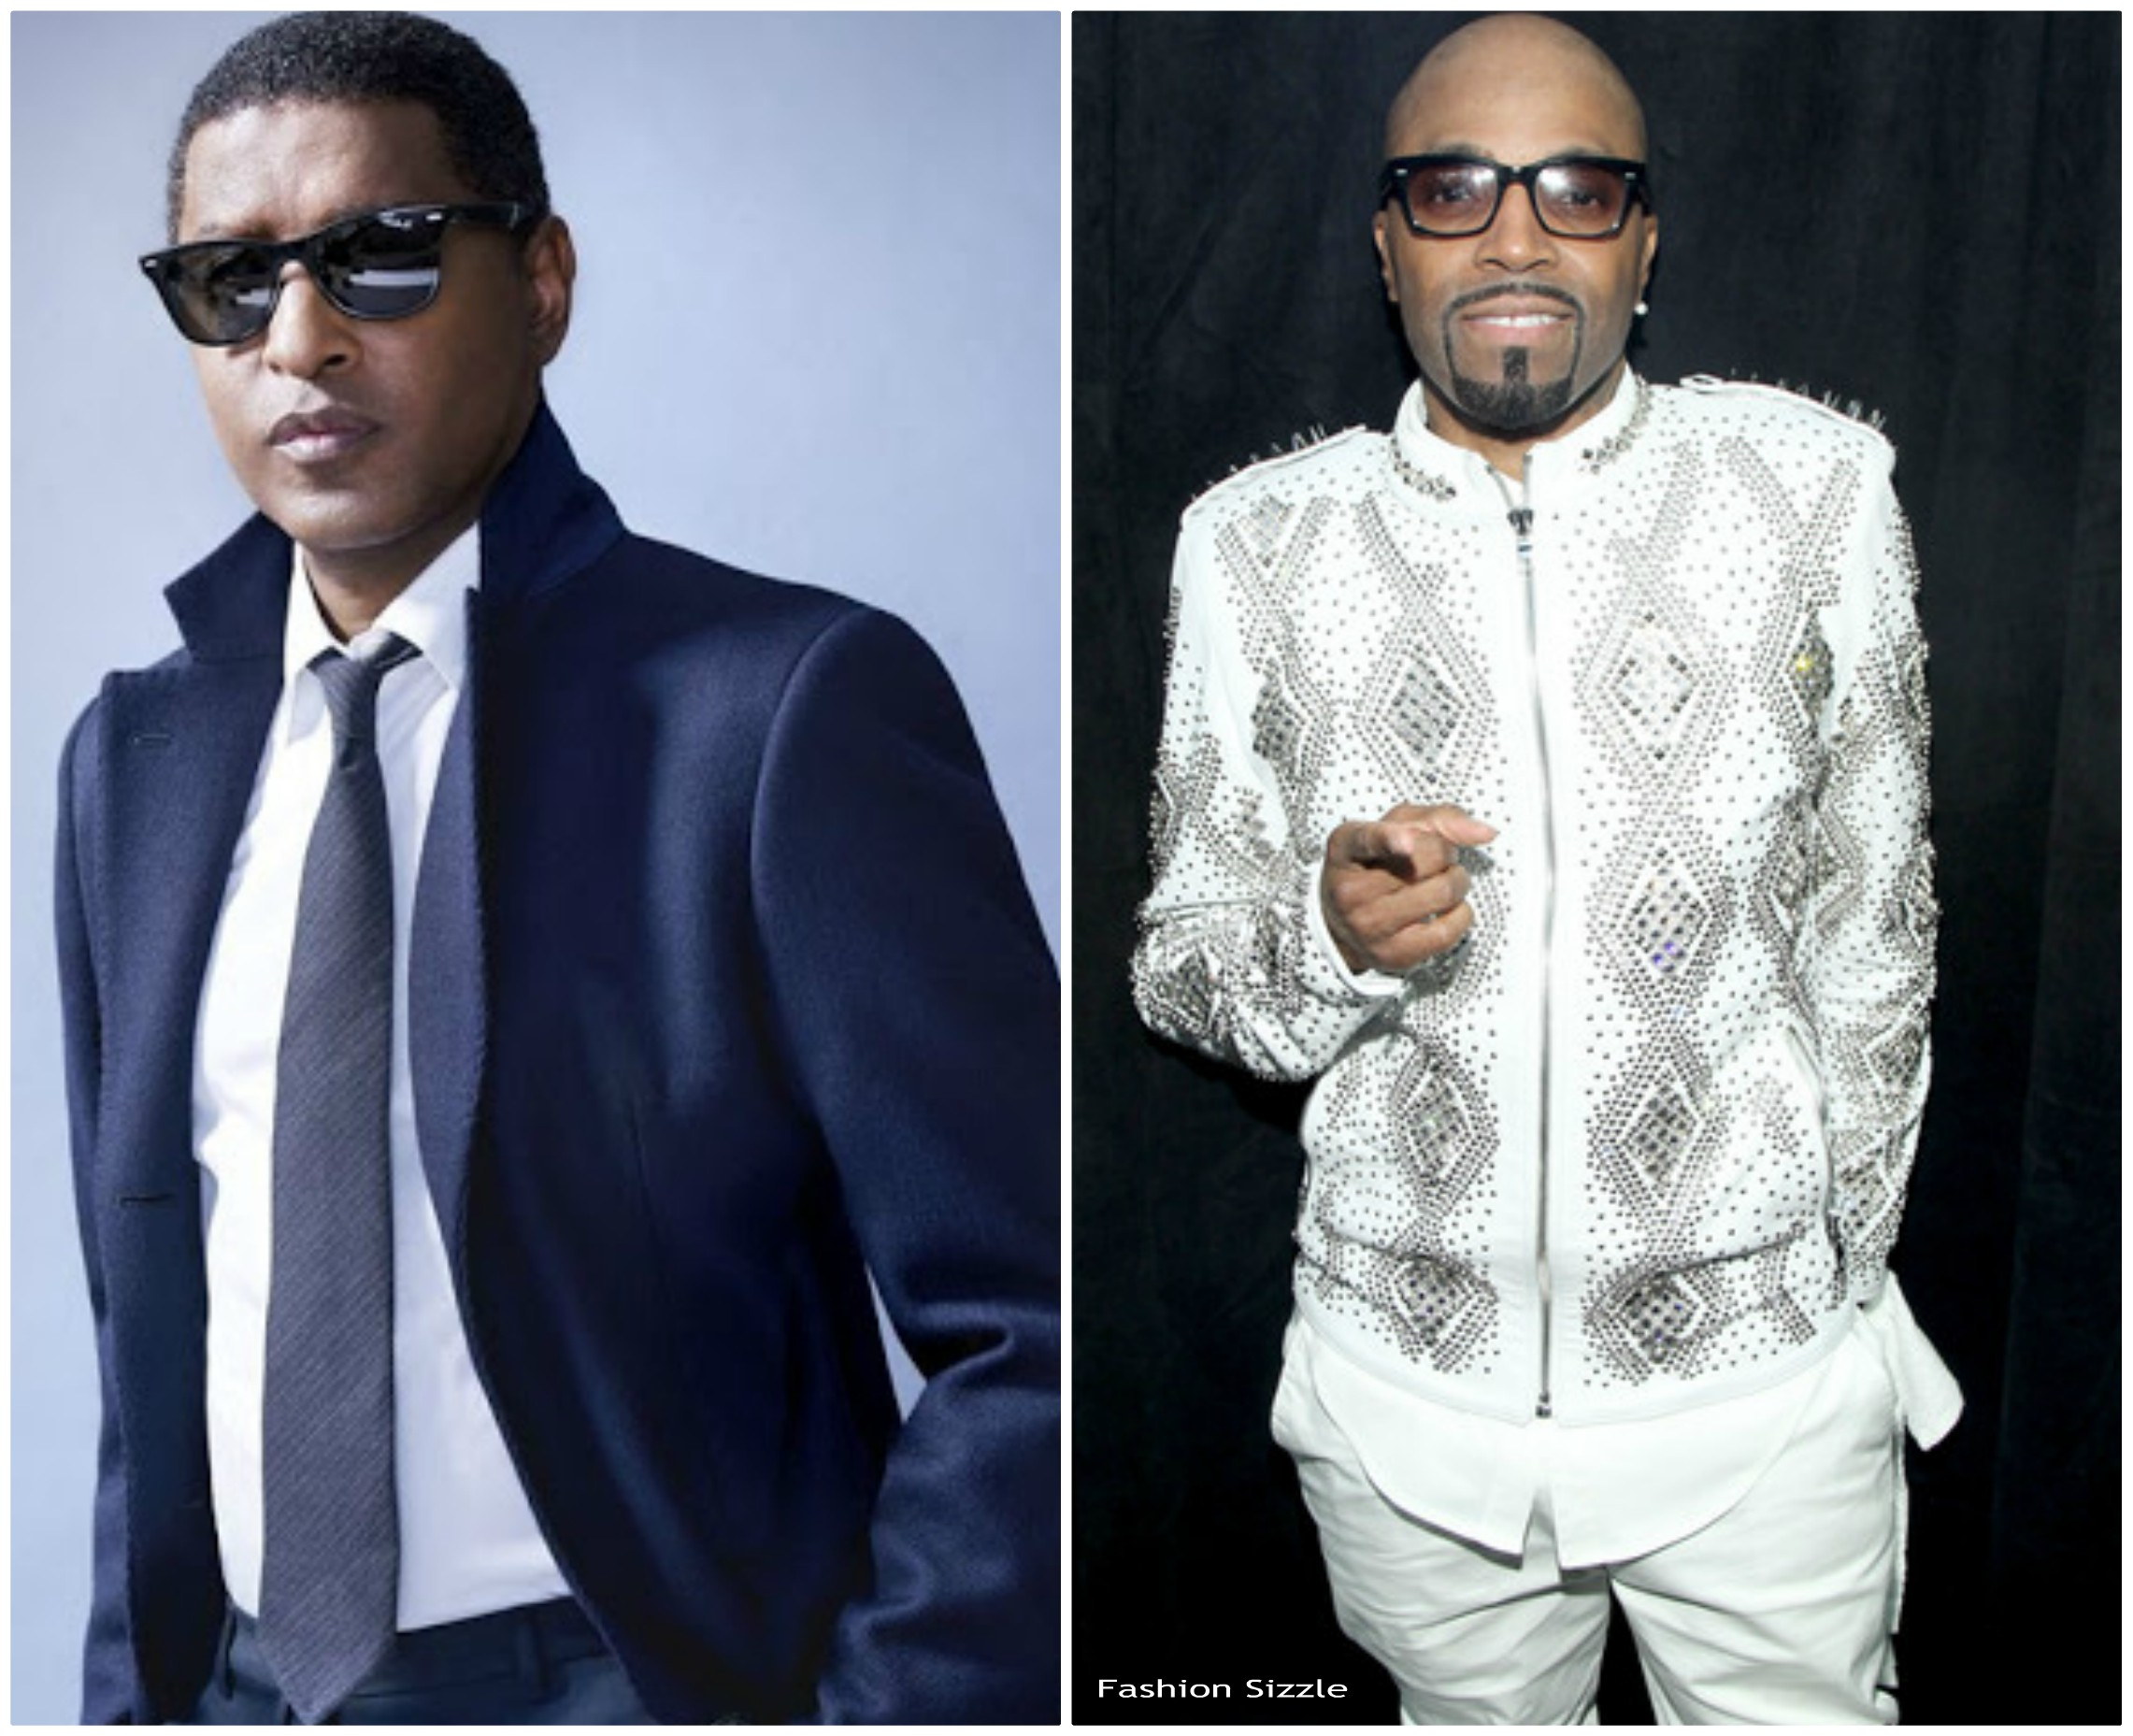 babyface-teddy-riley-verzuz-music-battle-end-early-due-to-technical-difficulties